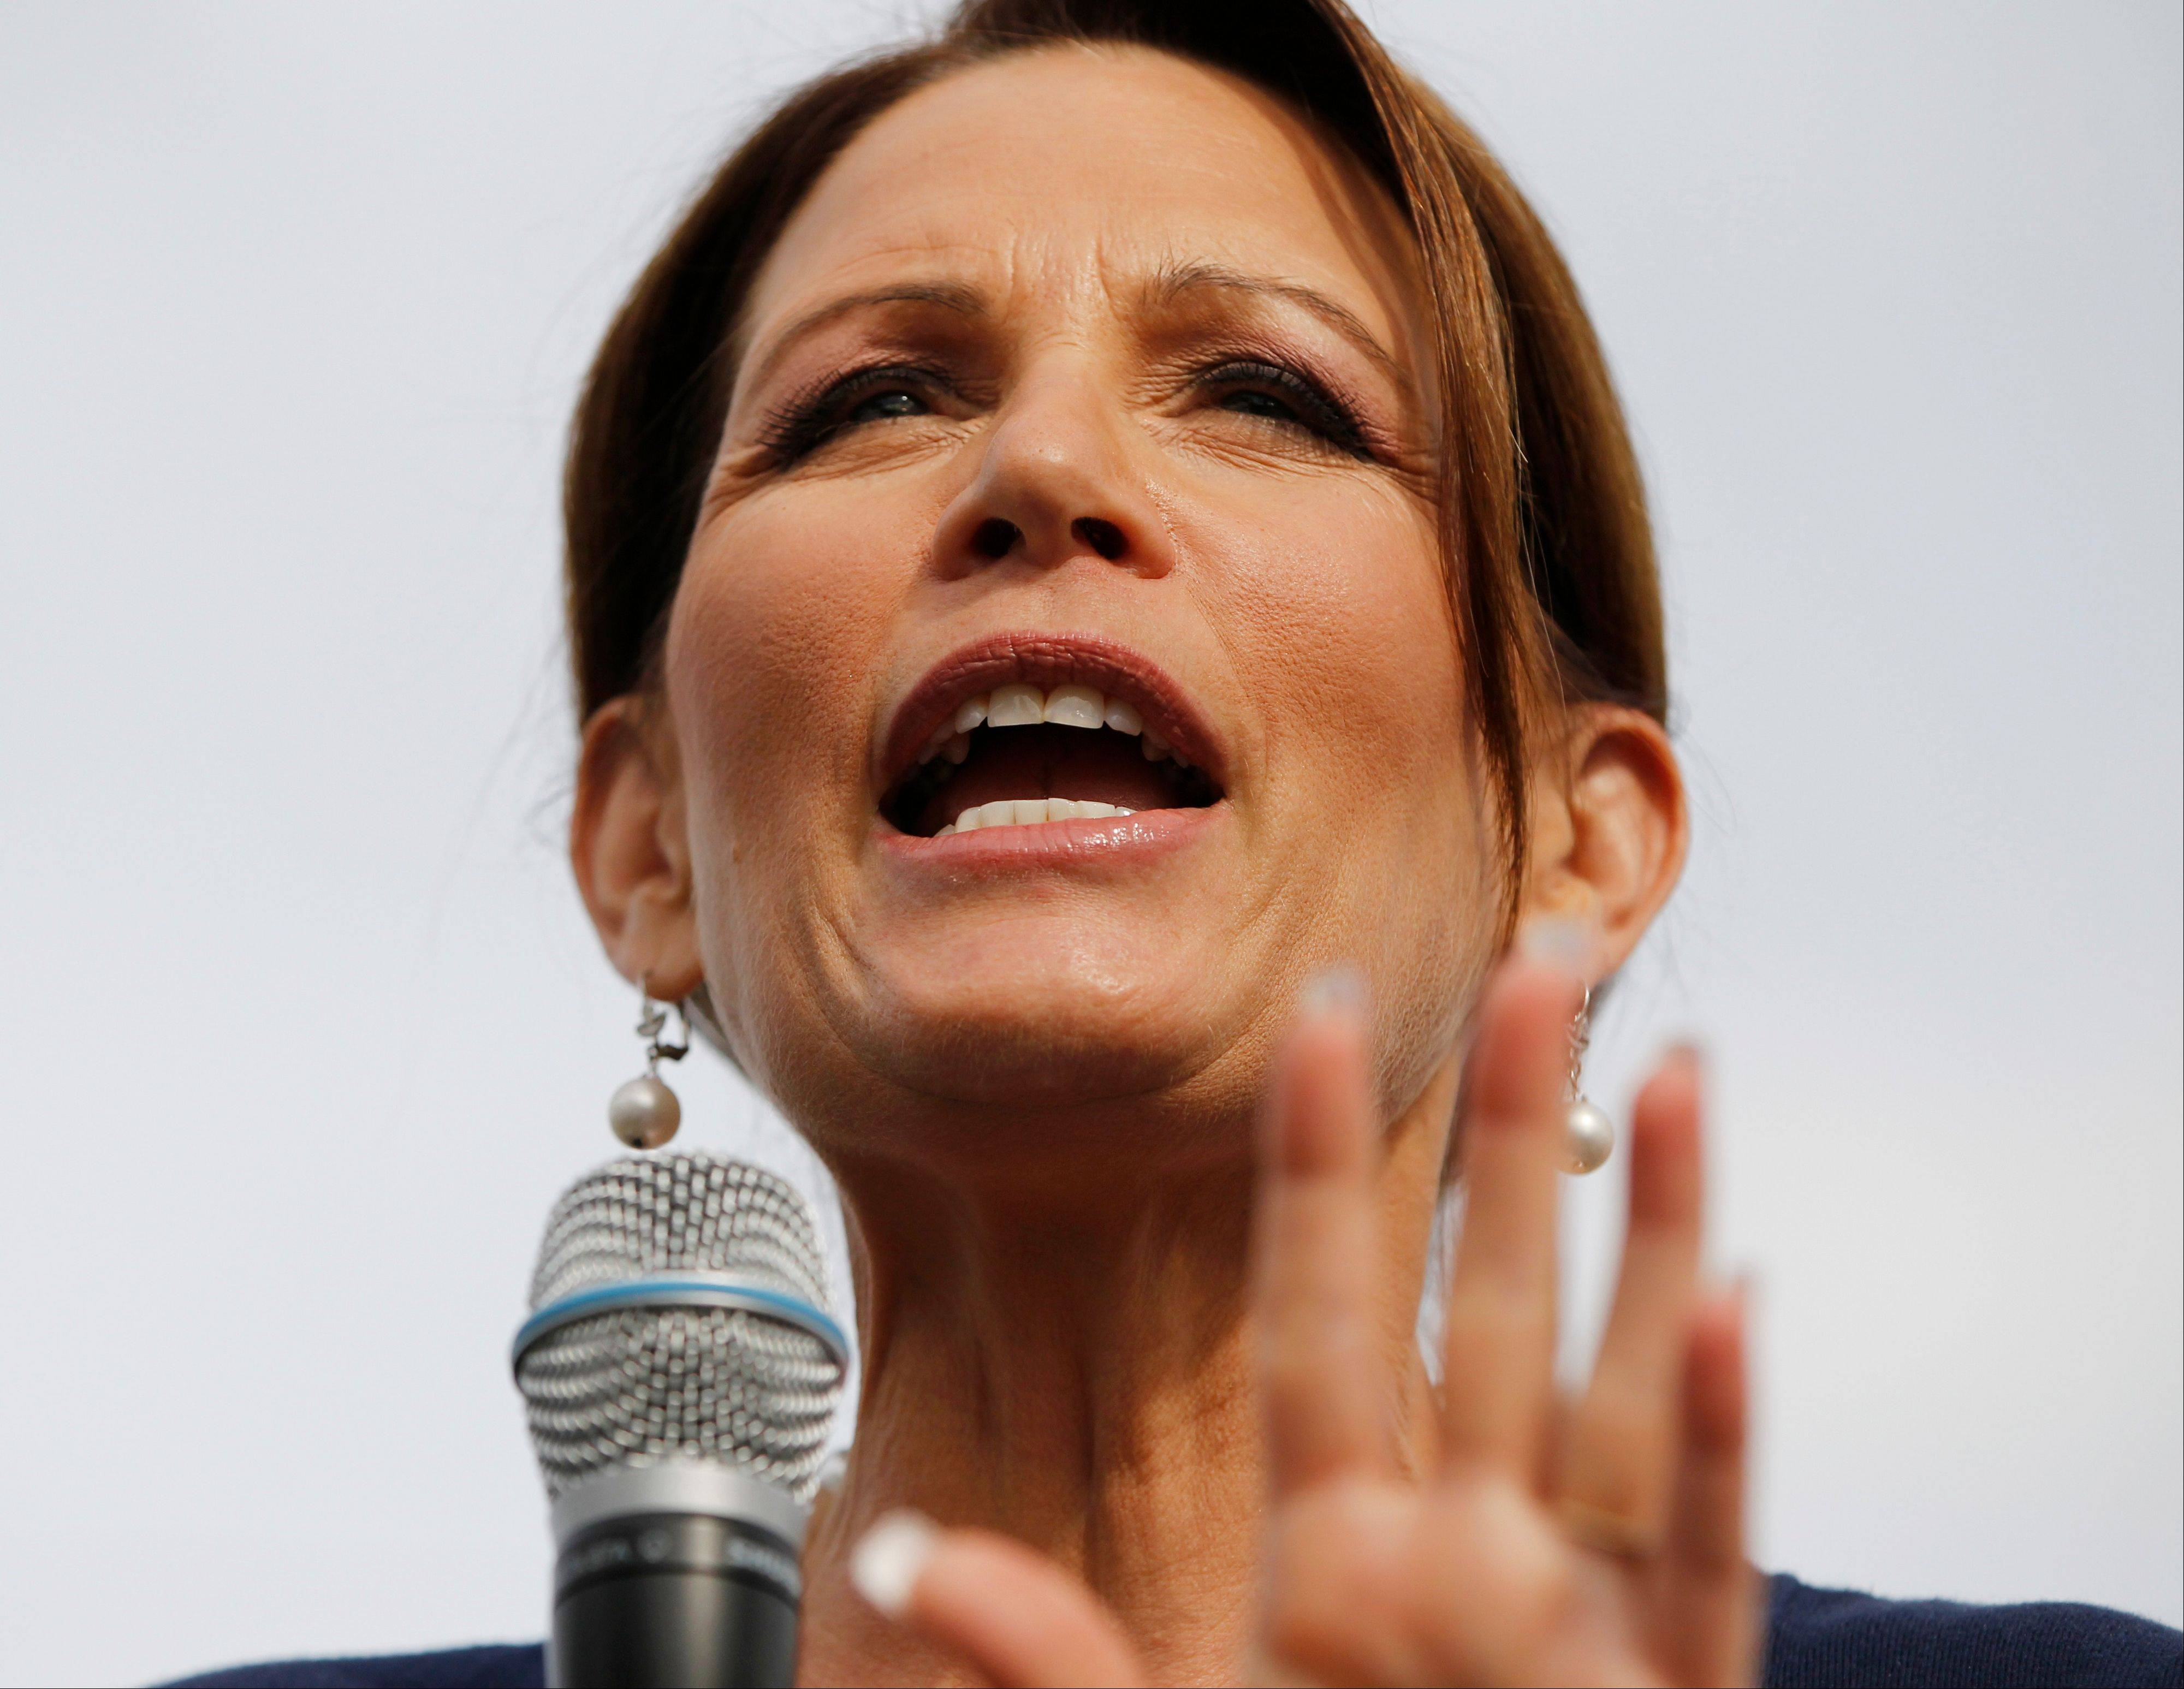 Congresswoman Michele Bachmann of Minnesota